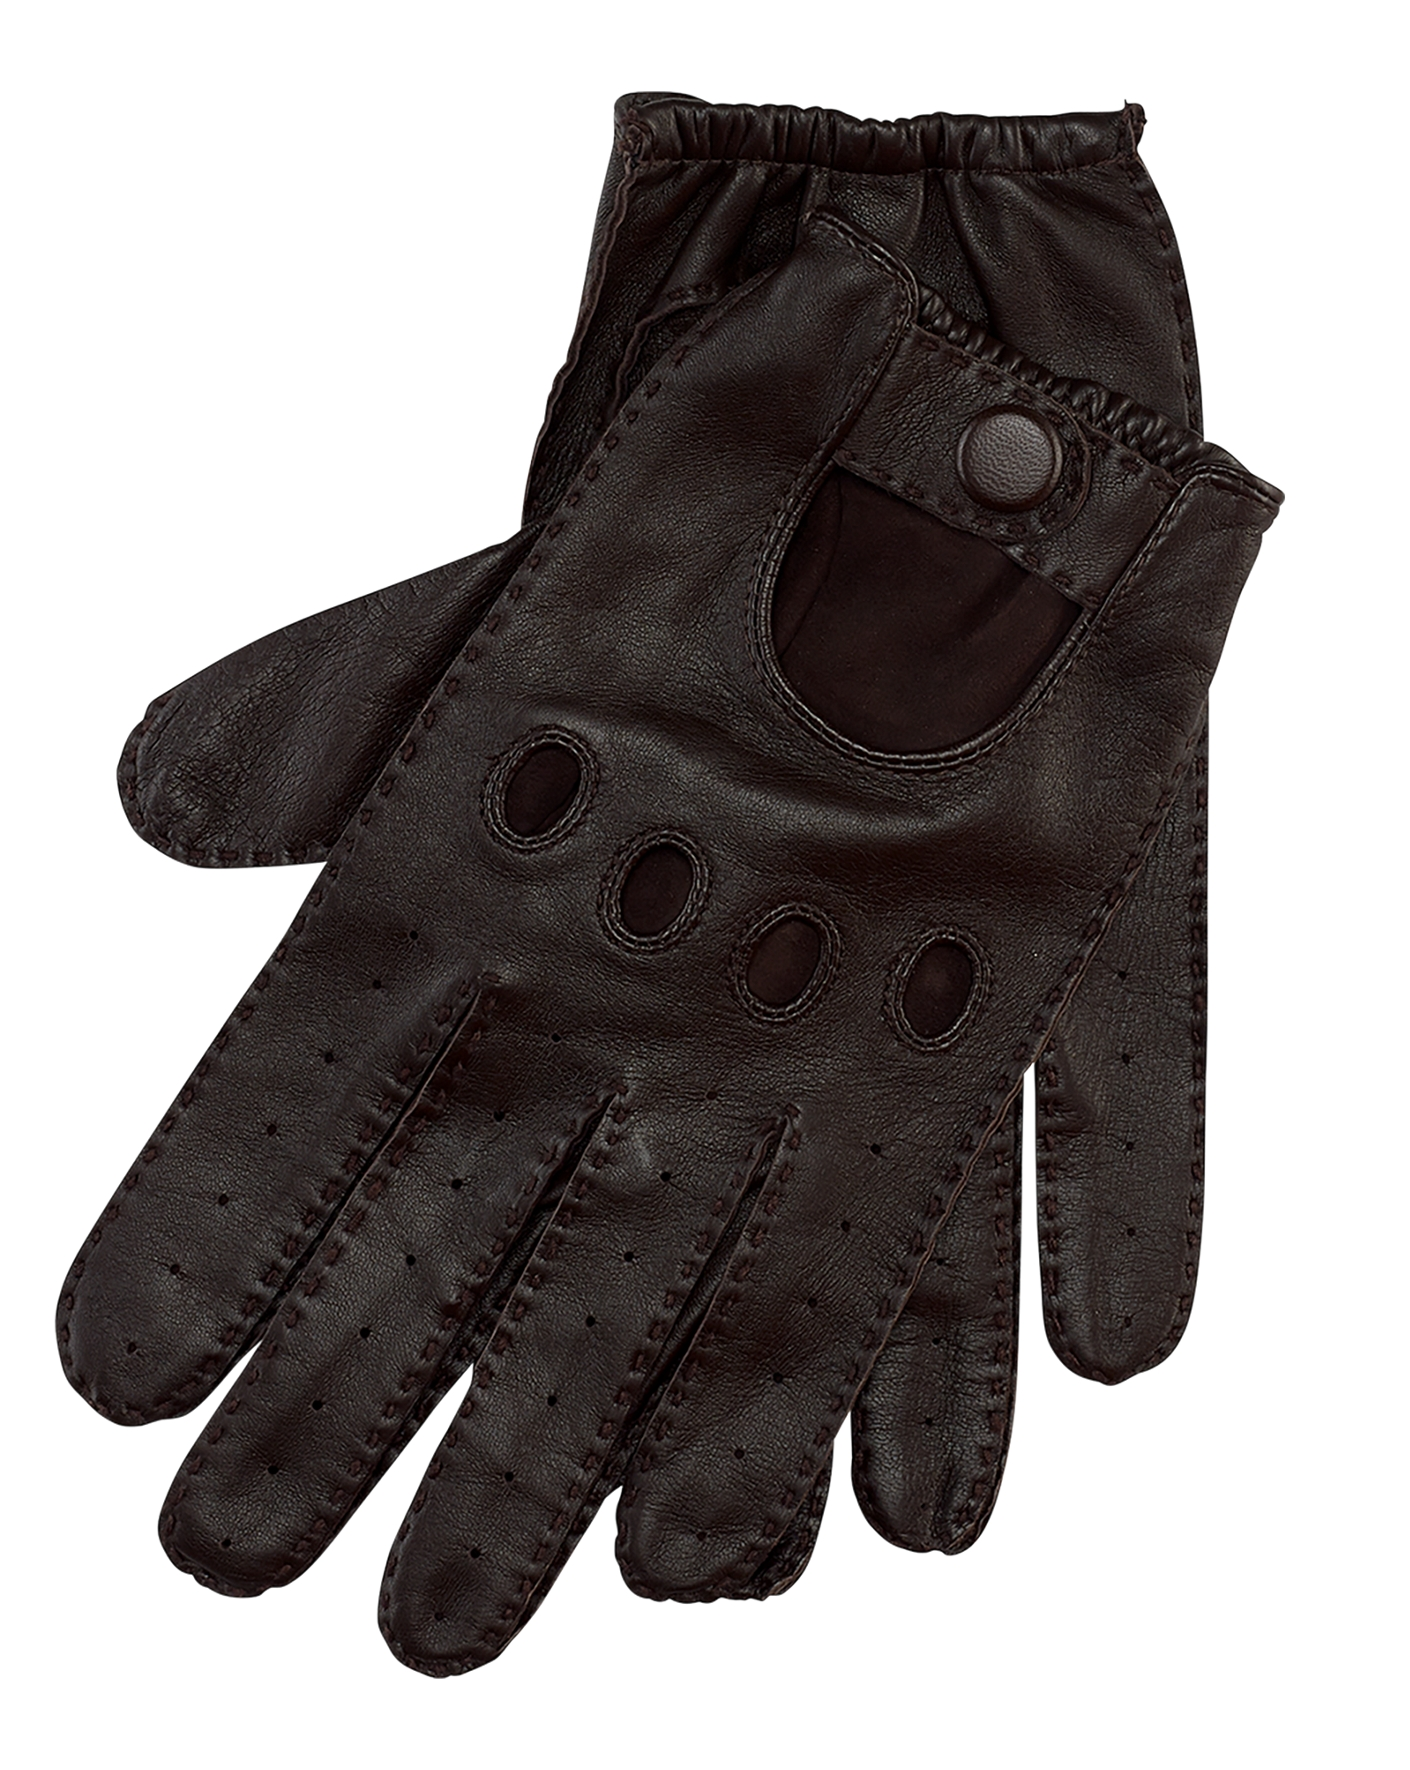 Womens leather gloves vancouver - Leather Driving Gloves Polo Ralph Lauren Gloves Ralphlauren Com